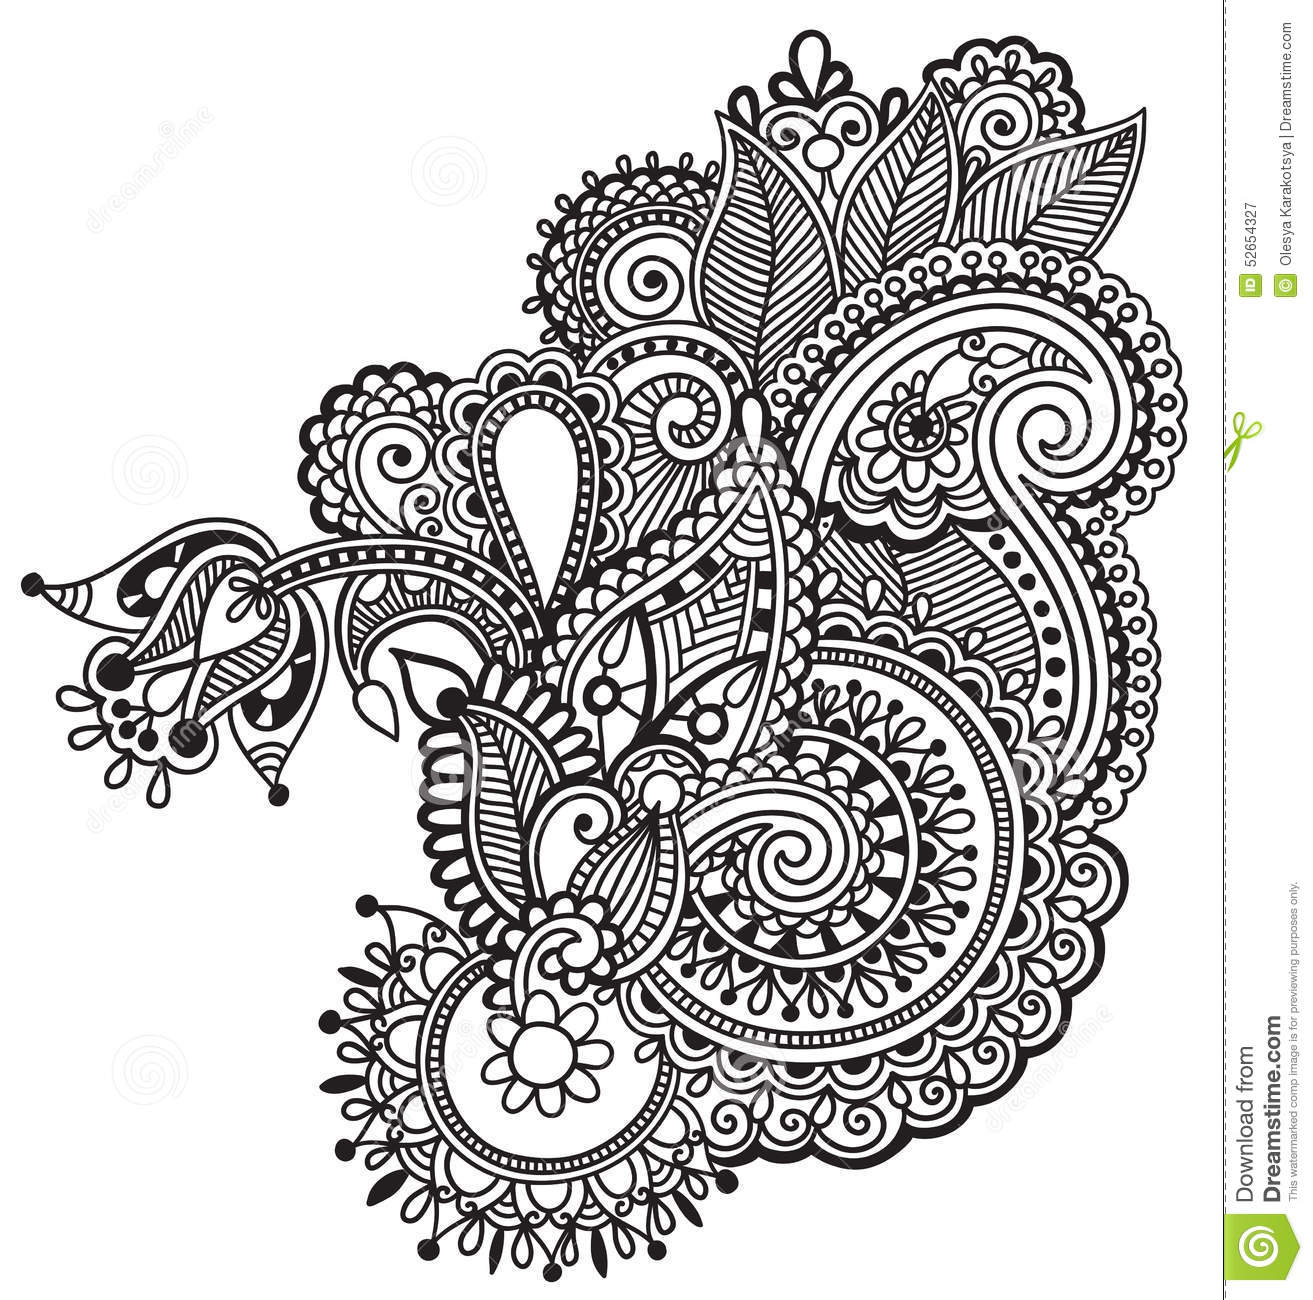 Line Art Typography : Black line art ornate flower design ukrainian stock